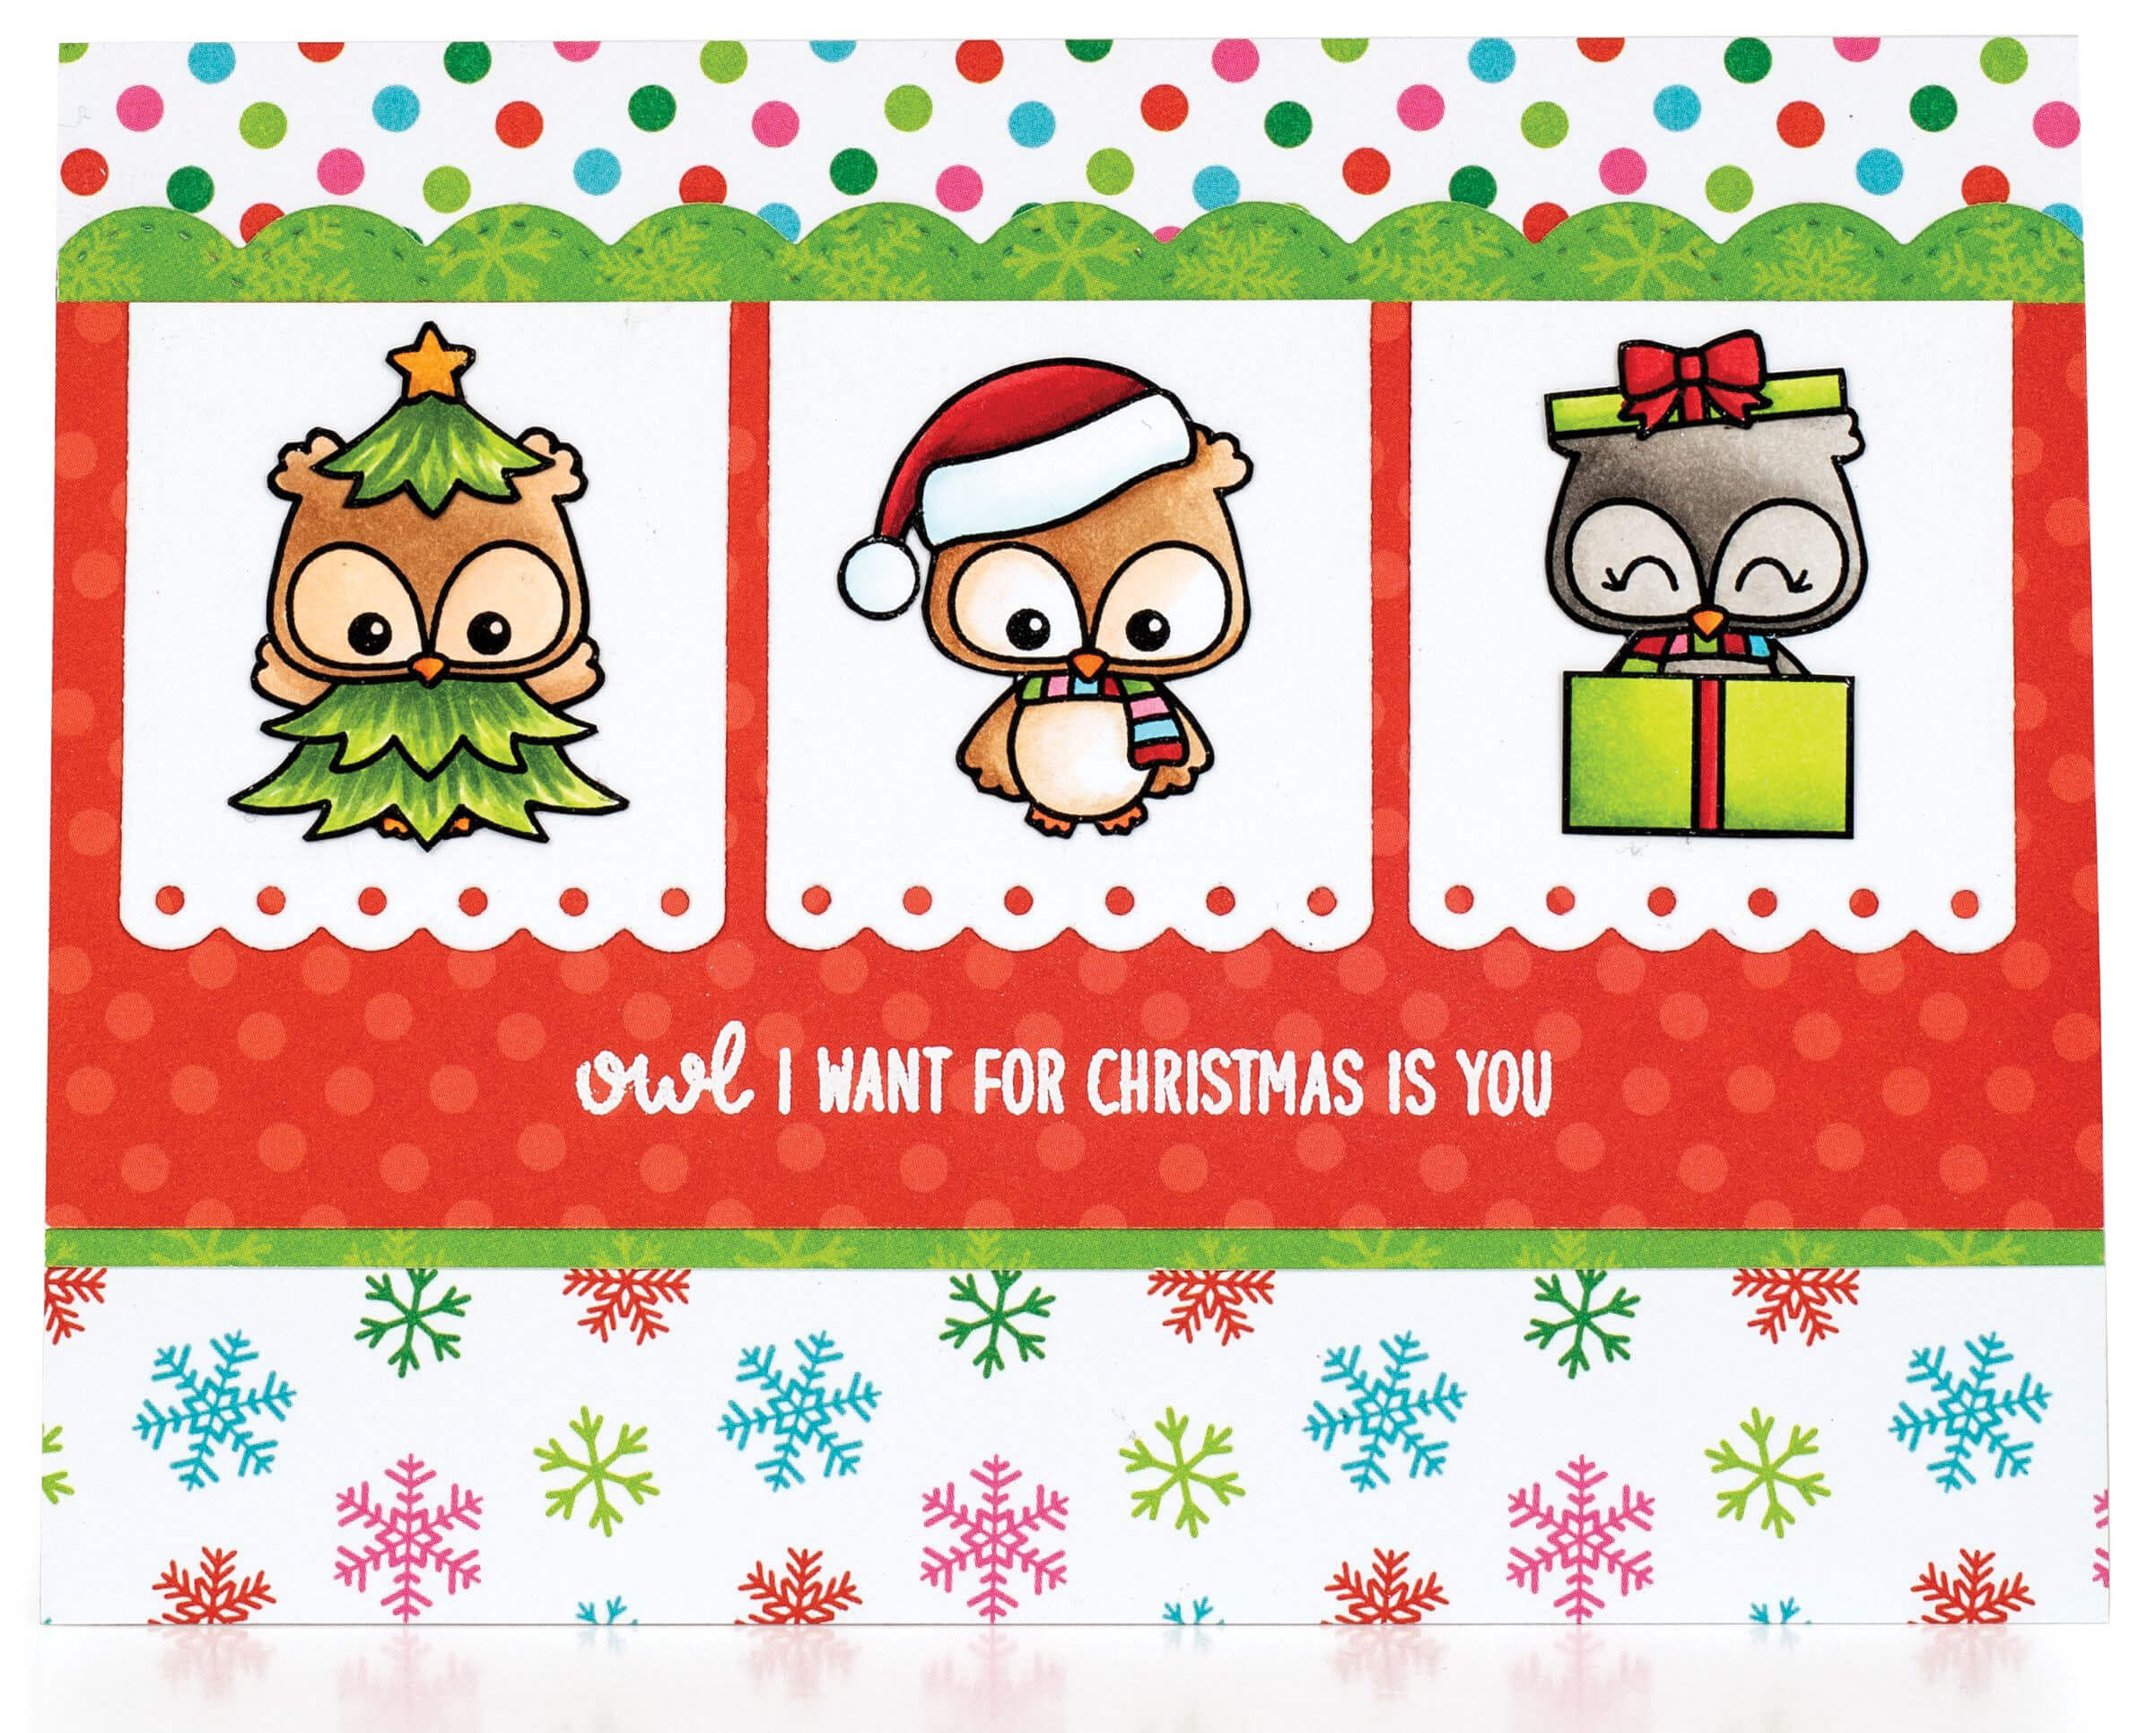 SCT Winter 2018 - Owl I Want For Christmas by Mendi Yoshikawa